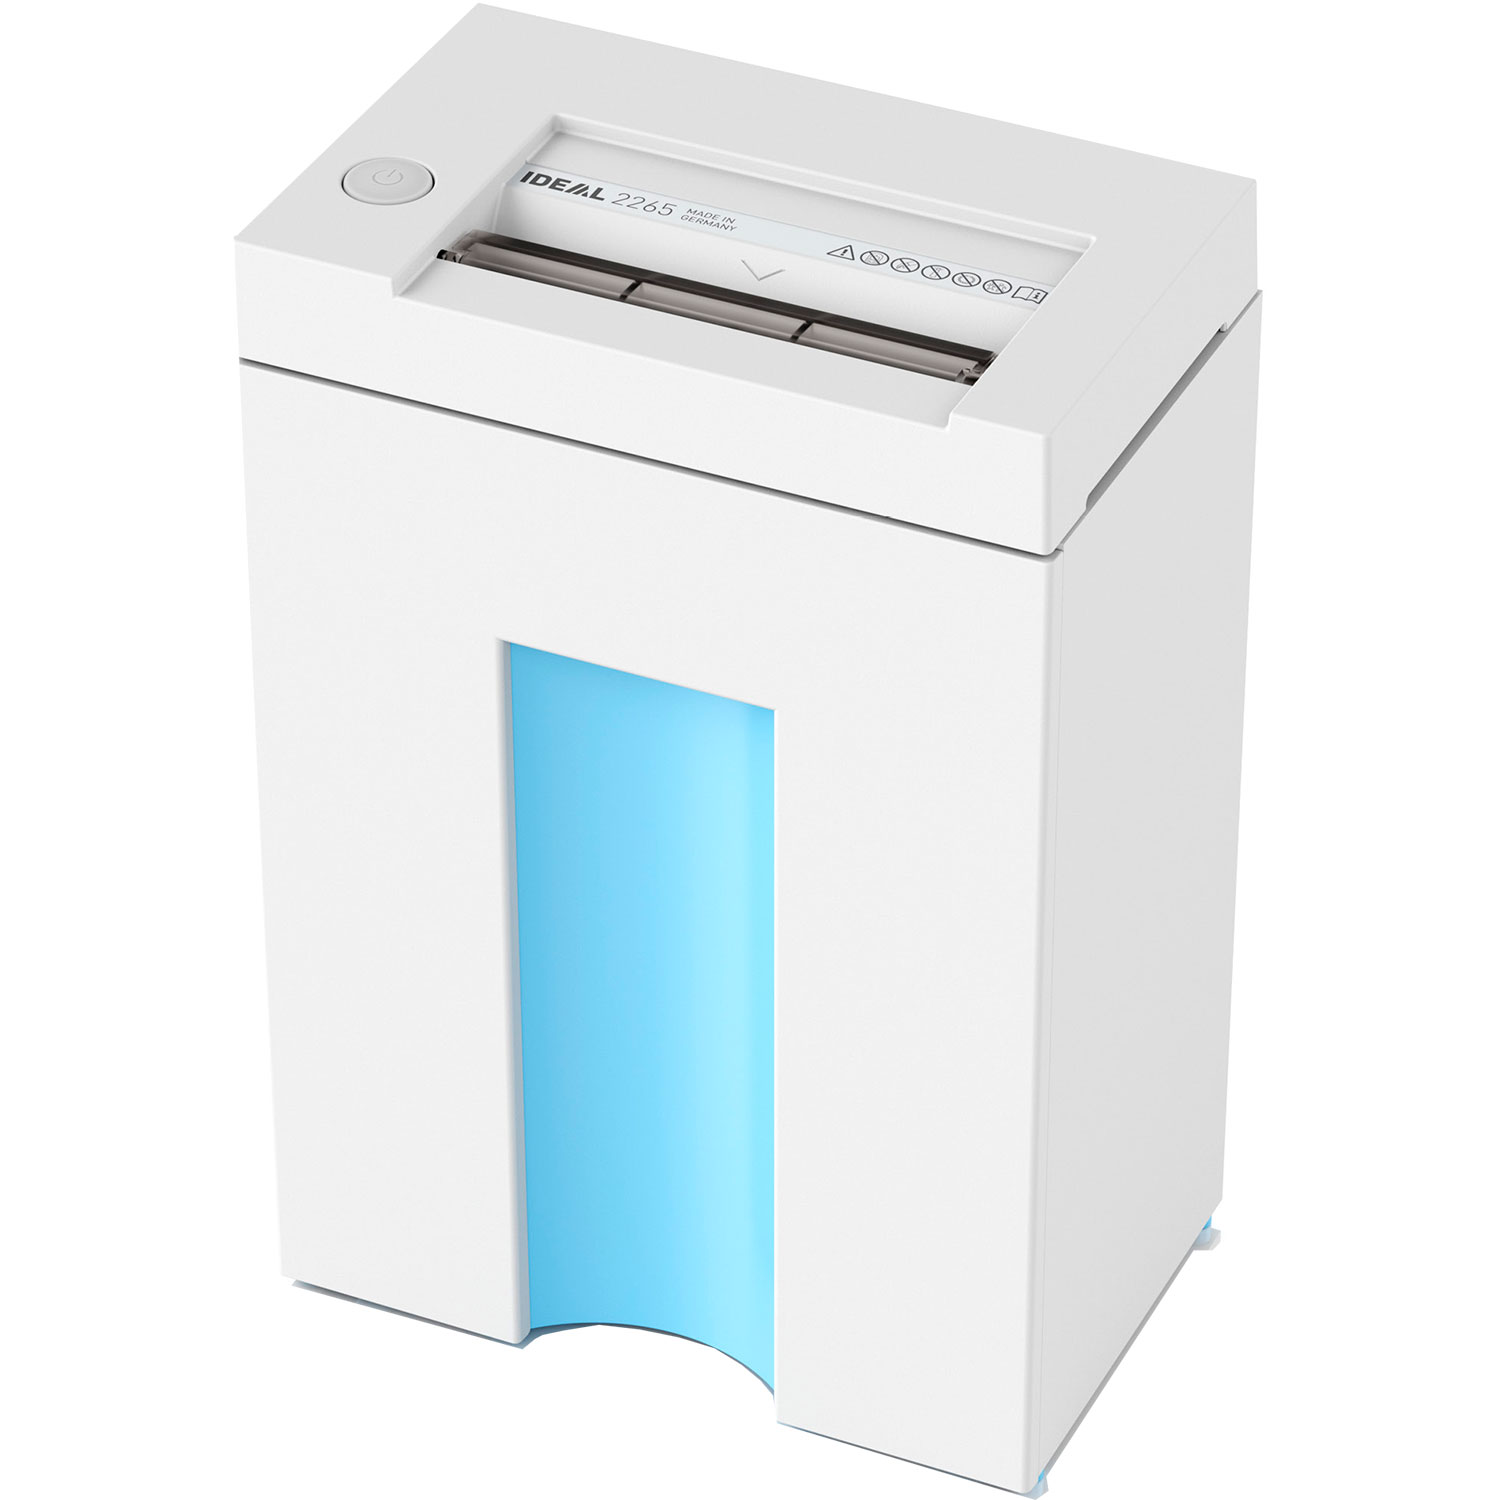 IDEAL 2265CC 2 x 15mm Cross Cut Deskside Shredder